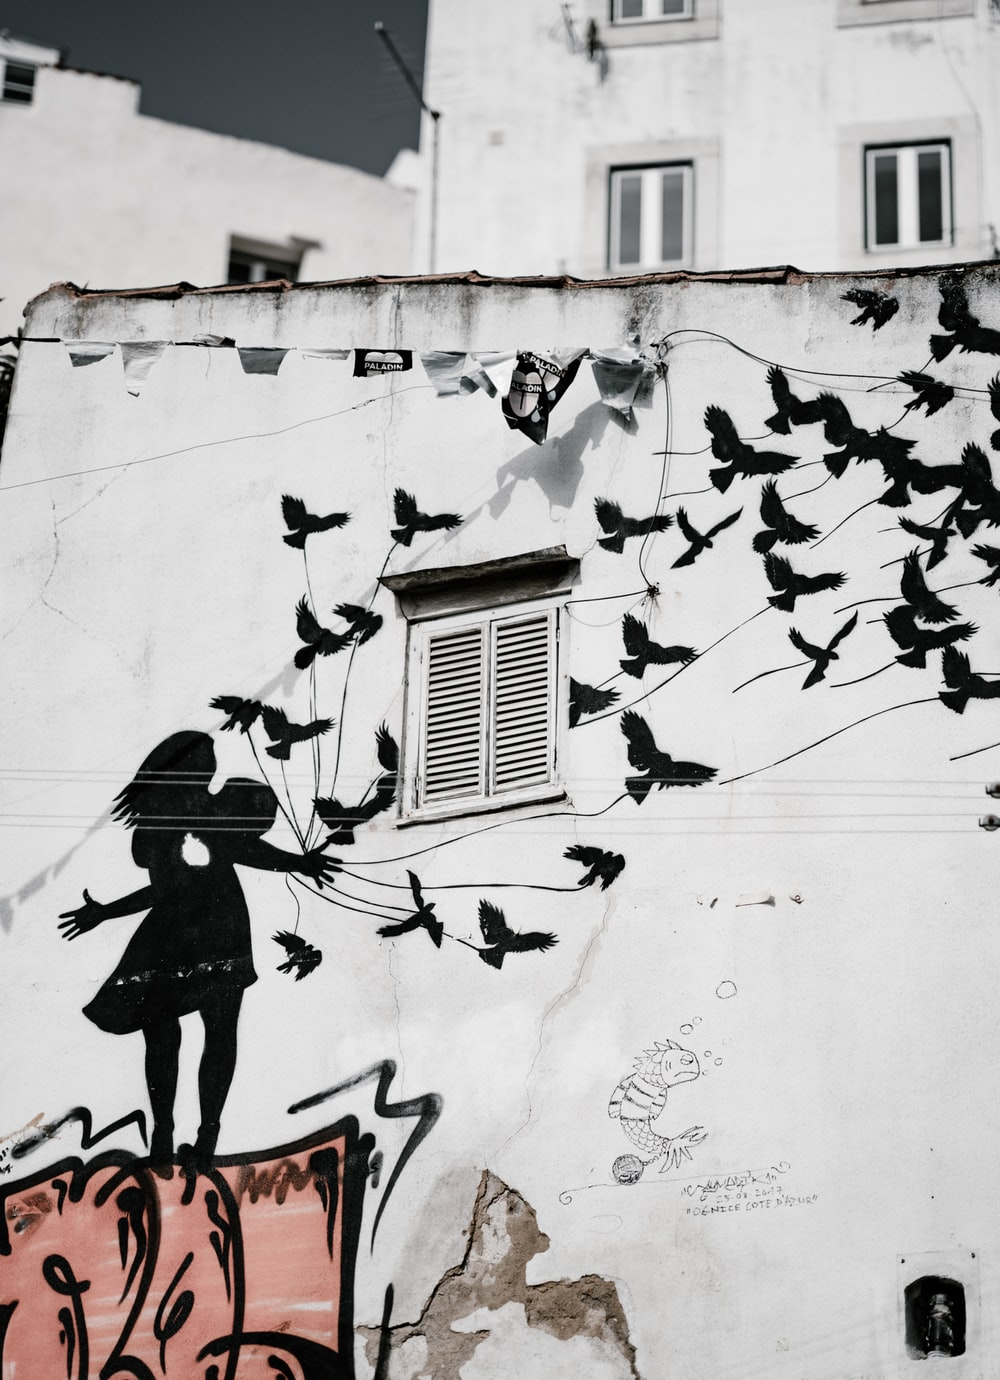 man and woman kissing each other with flight of bird graffiti